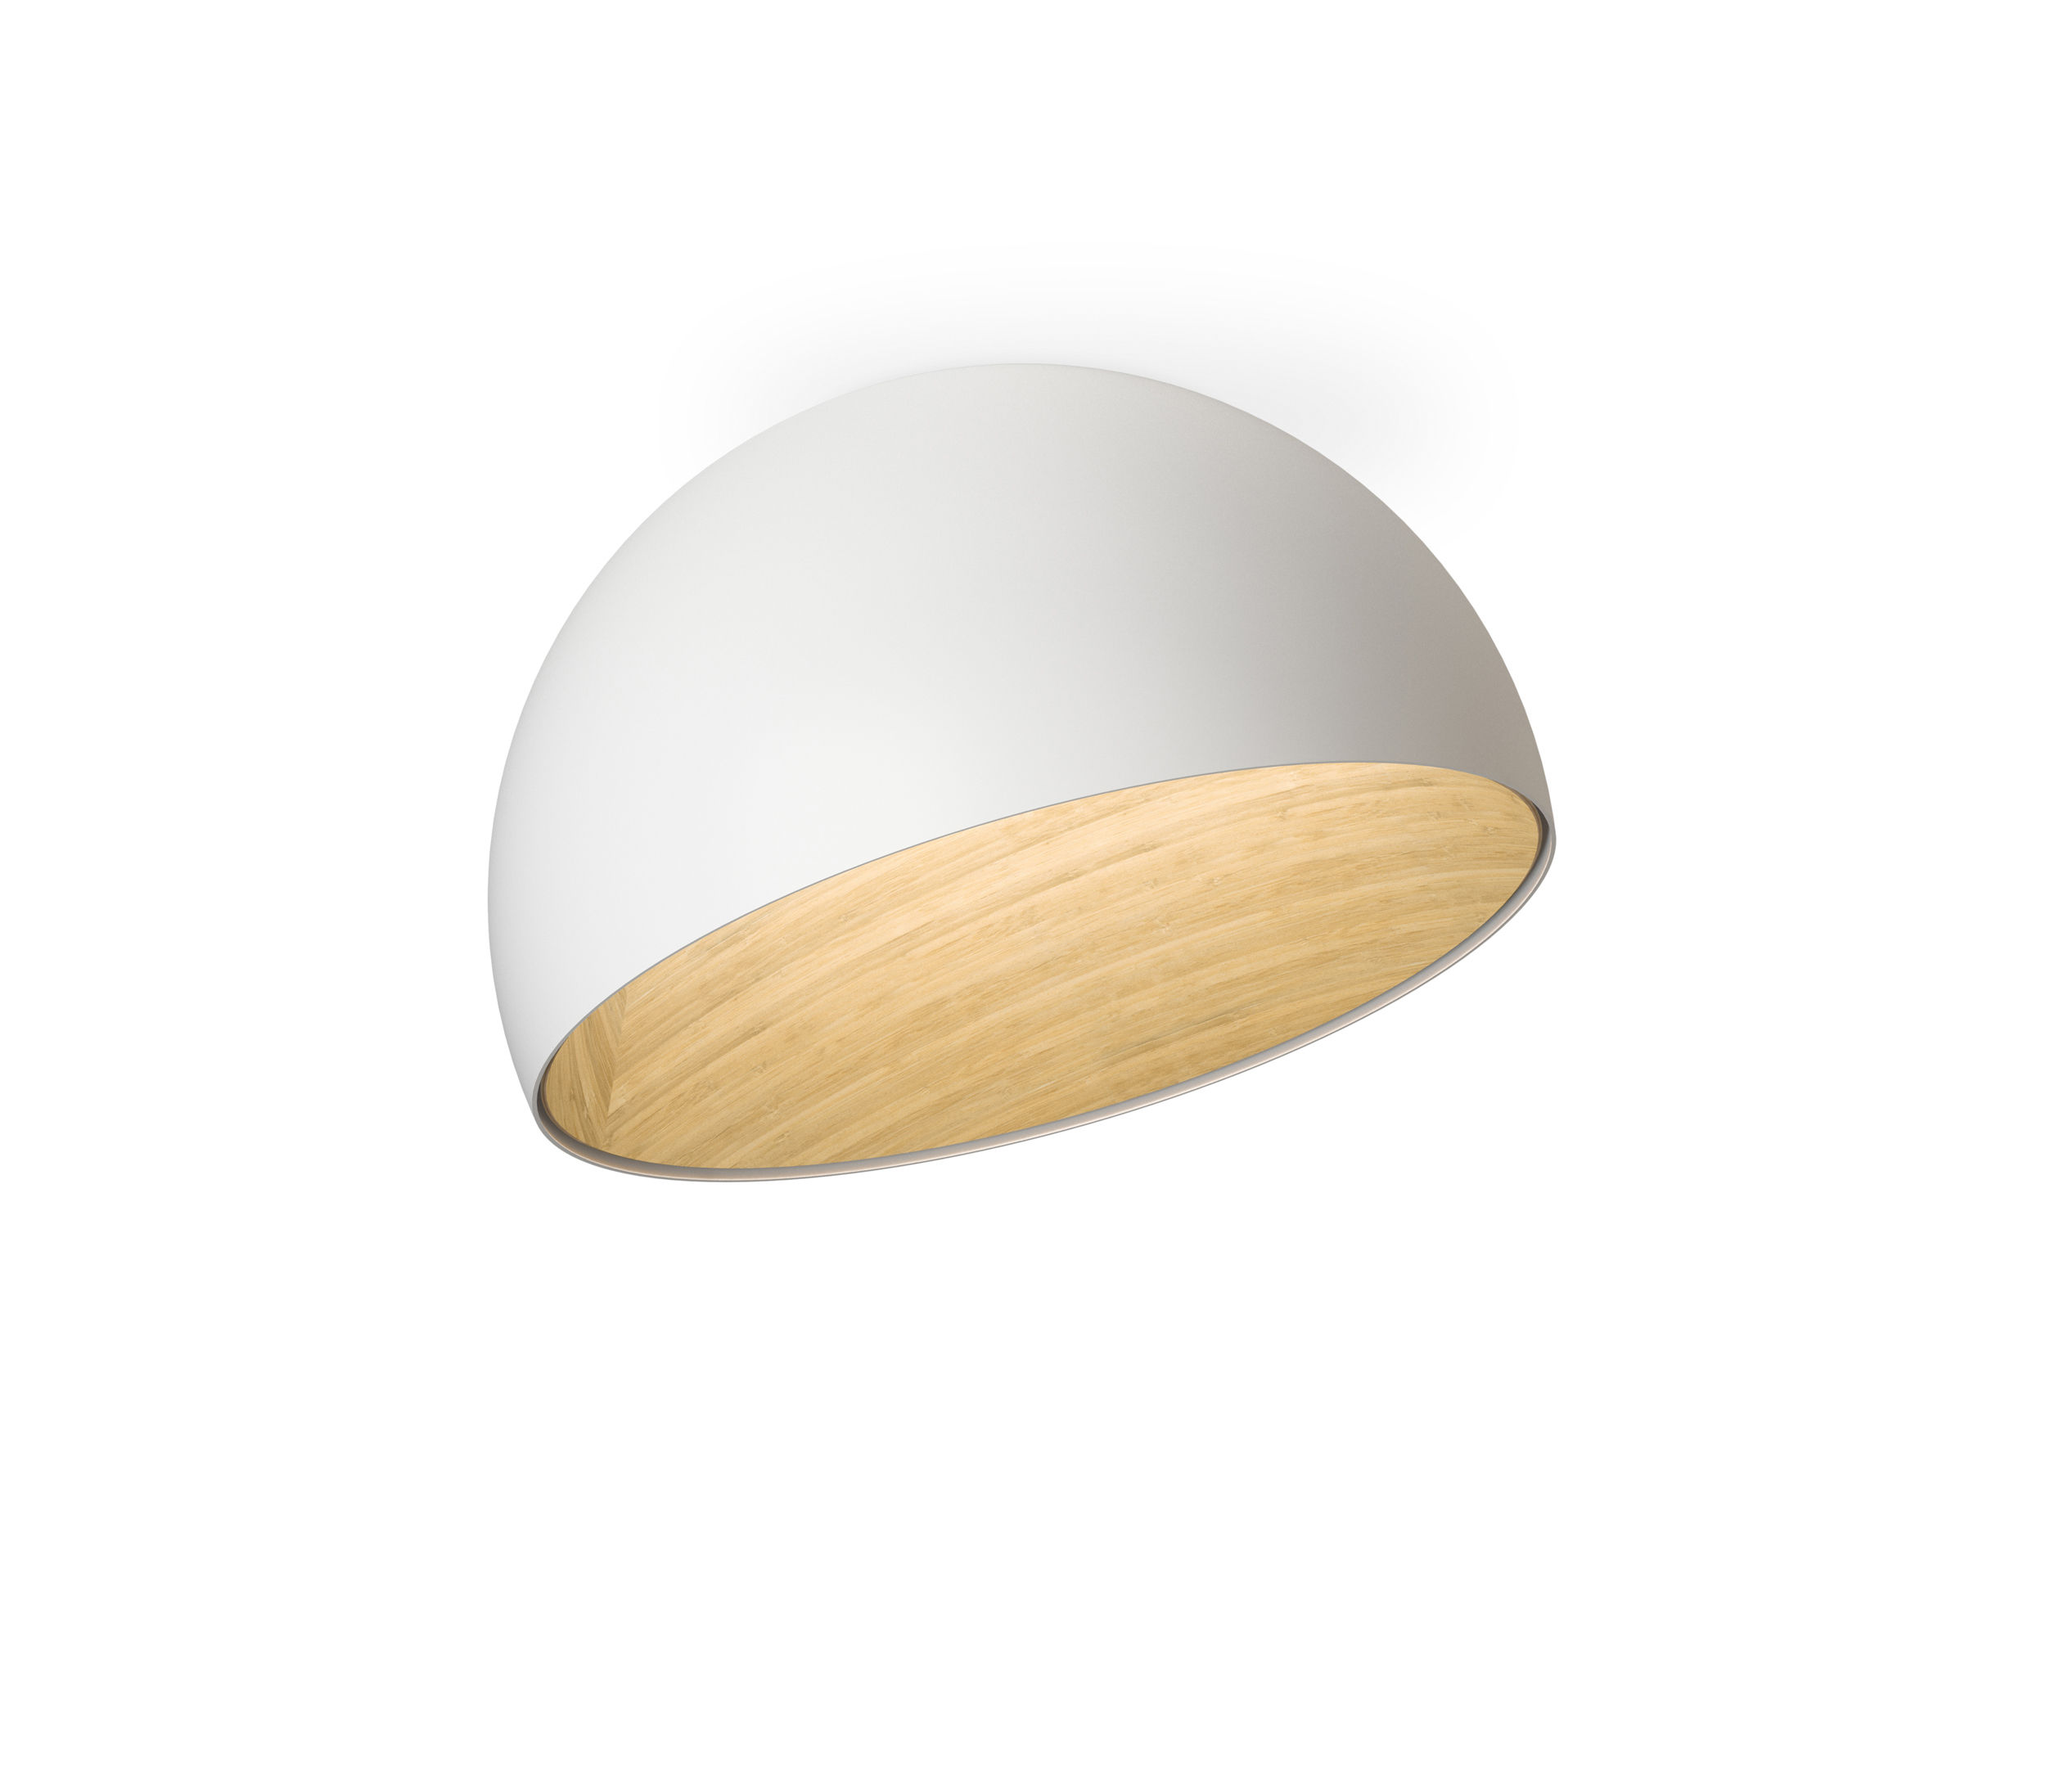 Lighting - Ceiling Lights - Duo LED Ceiling light - / Inclined - Ø 35 cm by Vibia - Inclined / White & wood - Lacquered aluminium, Oak